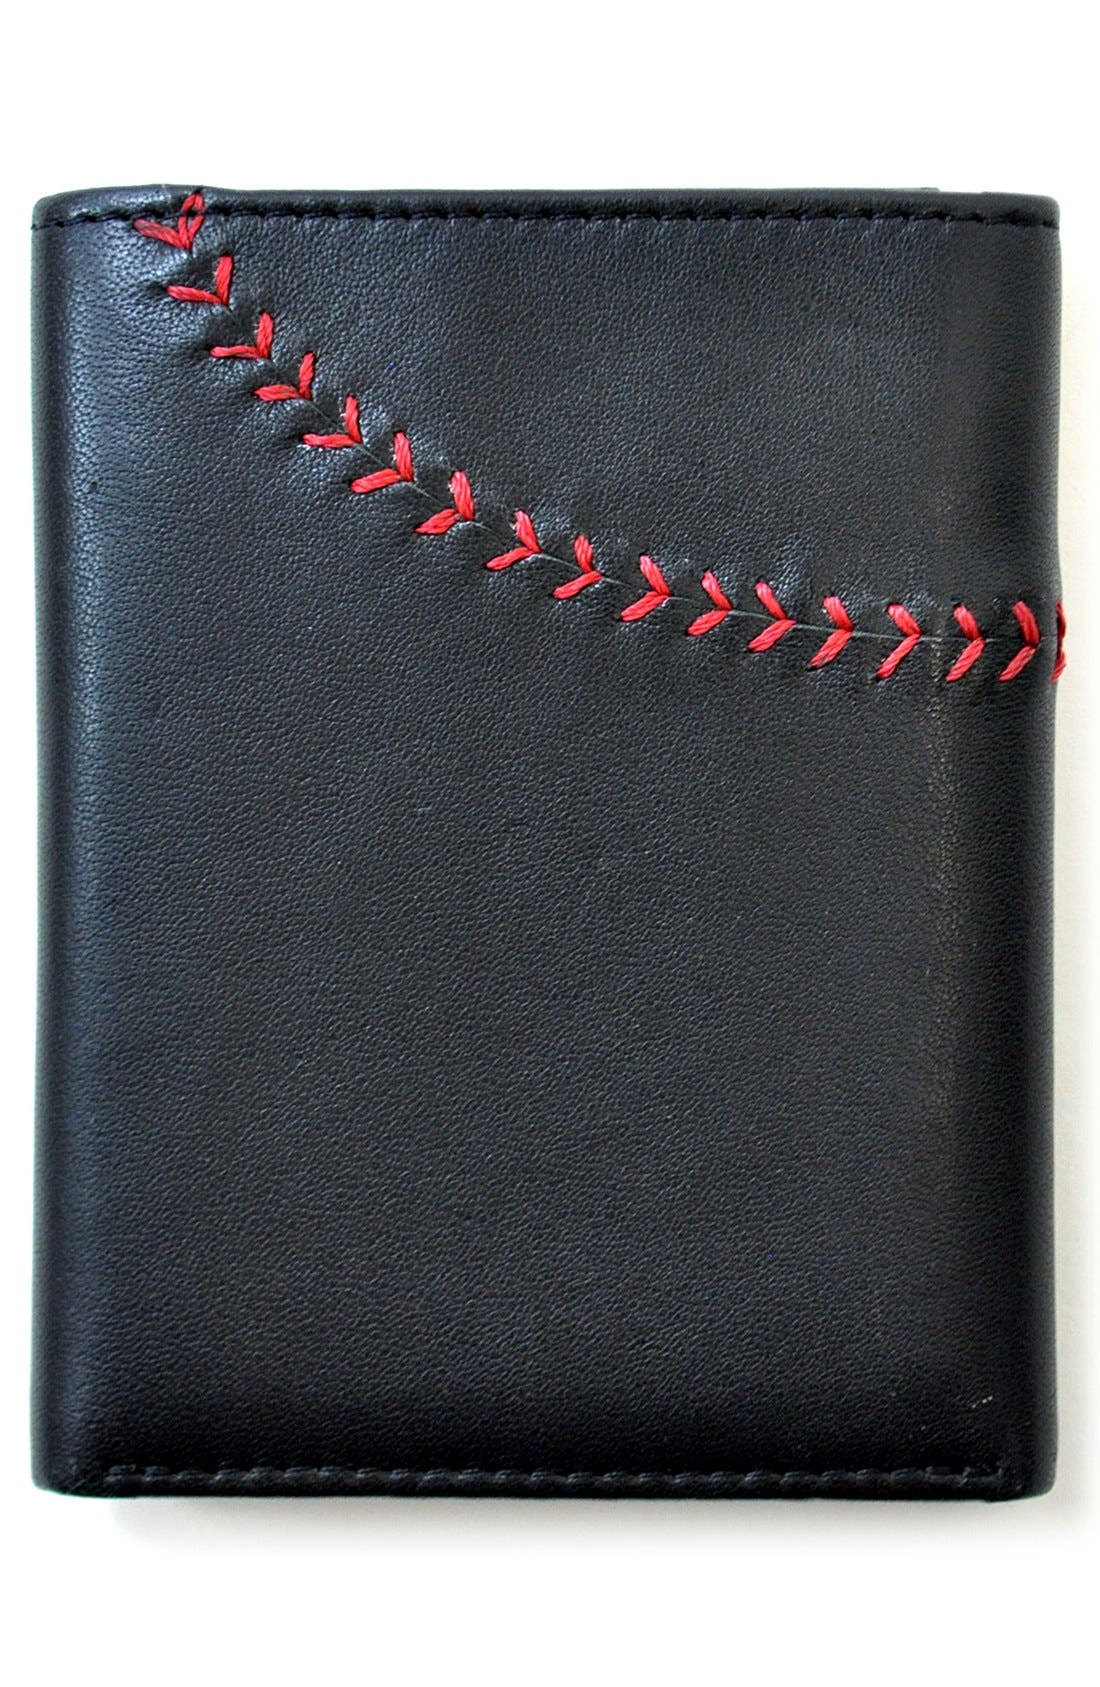 Baseball Stitch Leather Trifold Wallet,                             Alternate thumbnail 3, color,                             Black